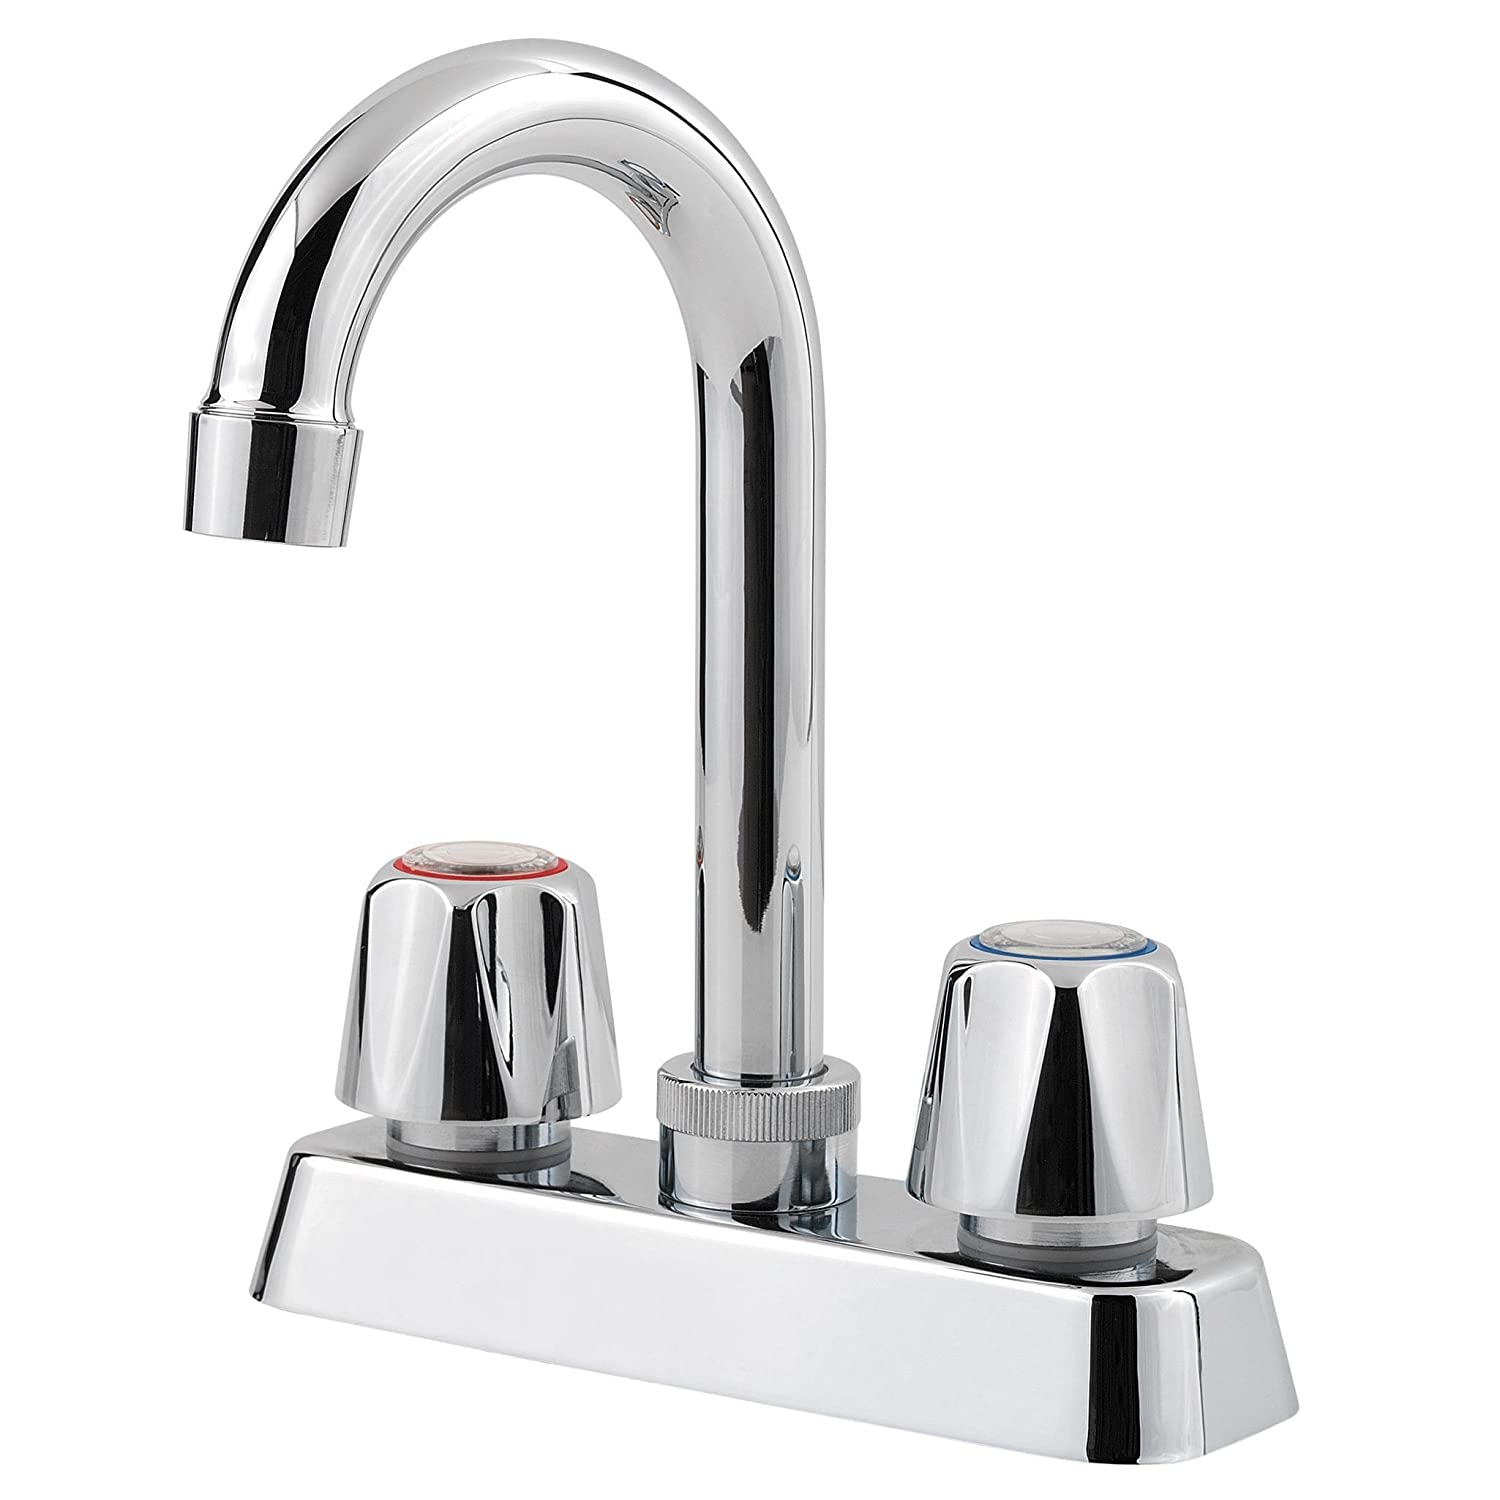 Pfister Pfirst Series 2-Handle Bar/Prep Kitchen Faucet, Polished Chrome